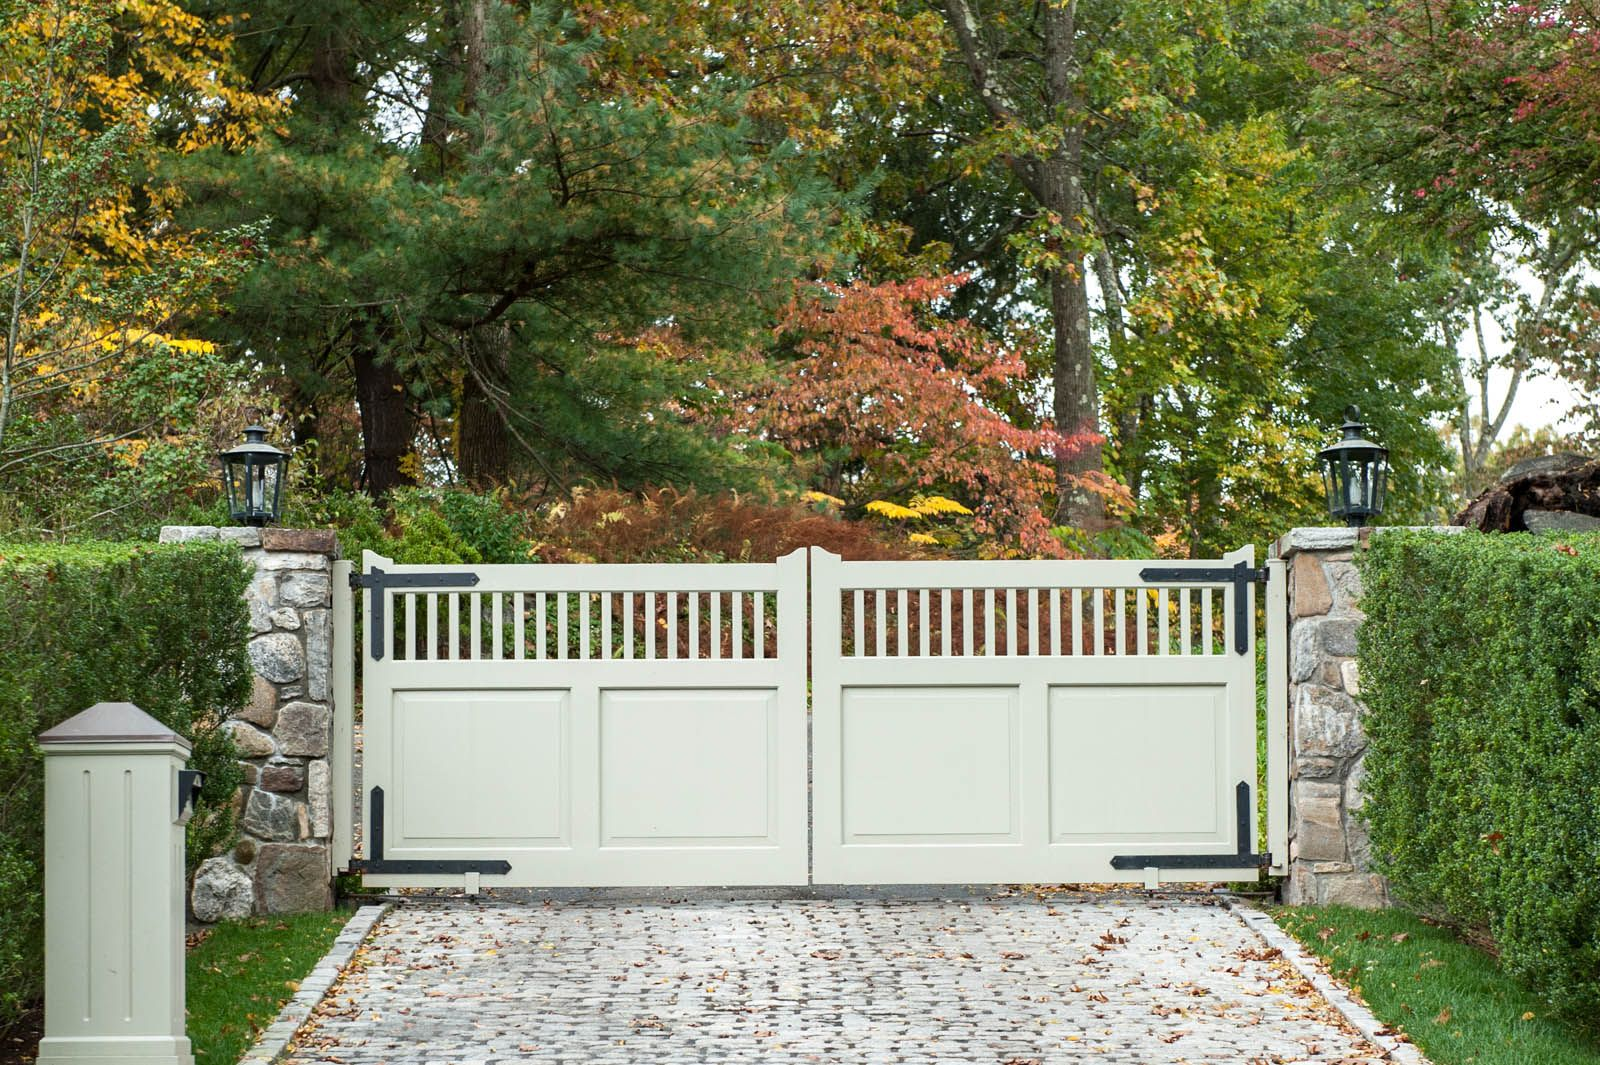 White Composite Driveway Gate Solid On Bottom Straight Spindles On Top Third Clean And Classic Wood Gates Driveway Wooden Gates Driveway House Gate Design